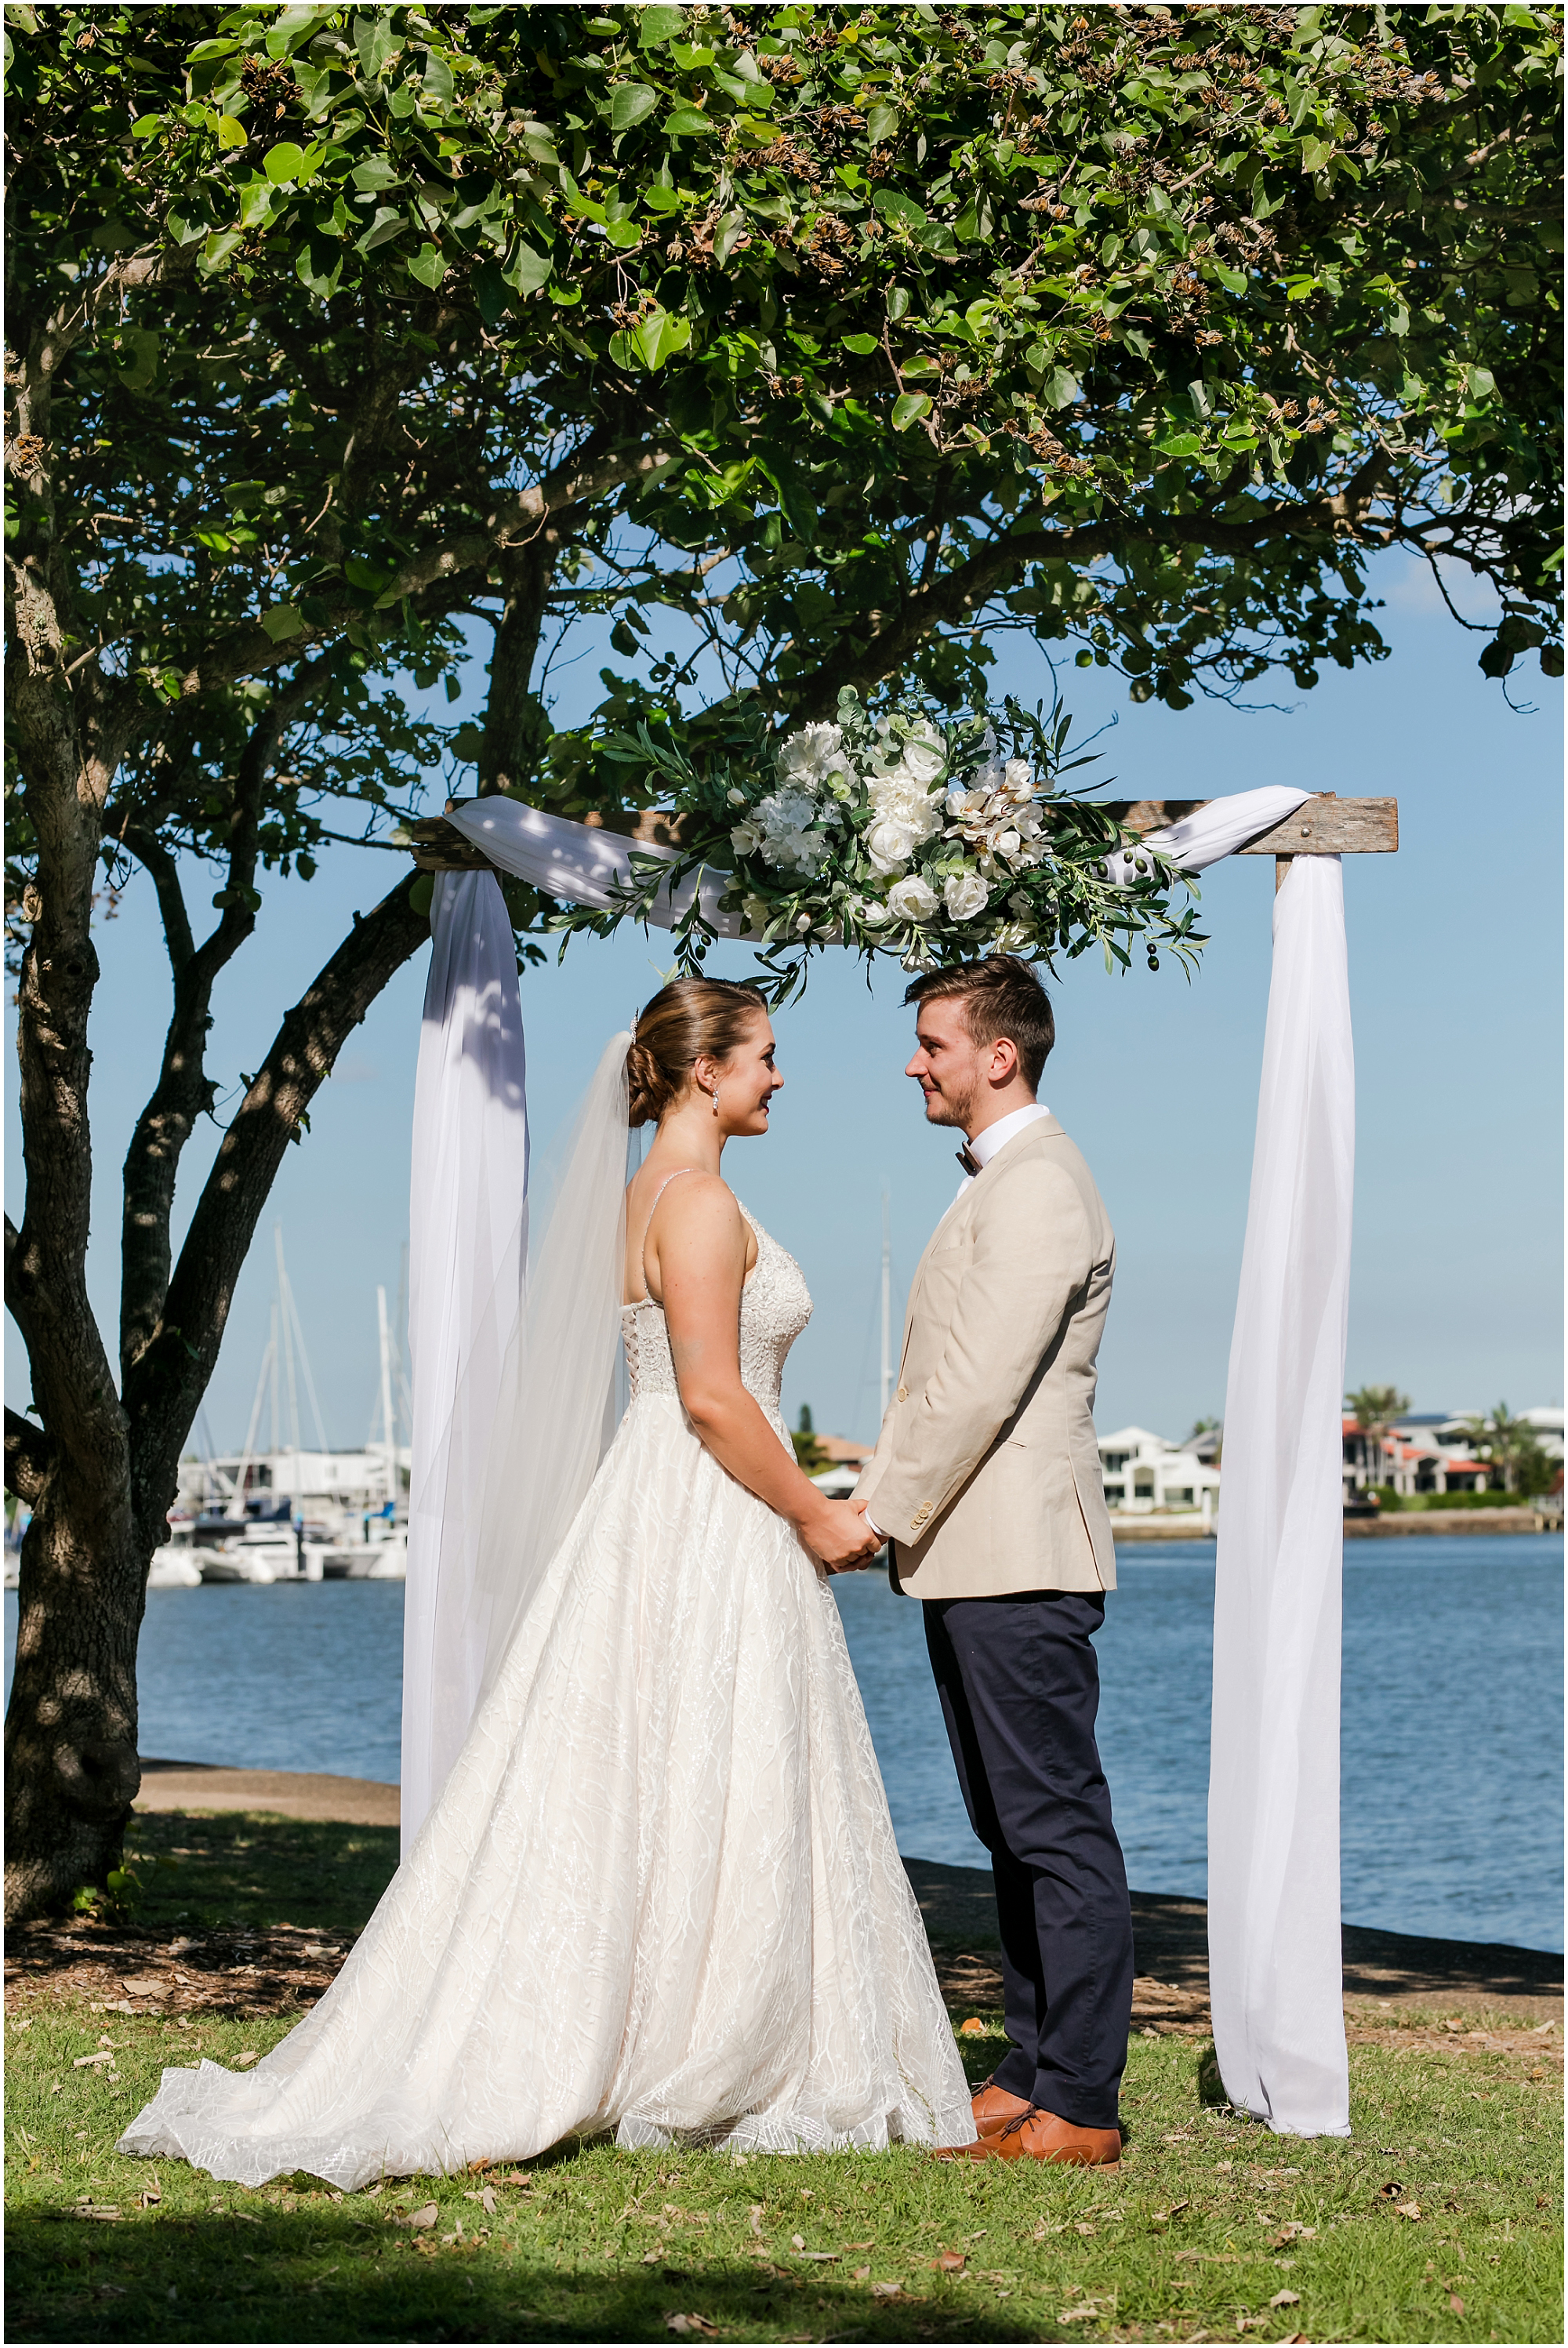 #LoveMooloolaba styled wedding photo shoot.  Mooloolaba weddings photo shoot. Bridal Gown, Judy Copley Couture. Exquisite Gowns by Yvonne. Groom's suit, Suits Direct. Wedding styling, Cloud Nine Weddings and Events. Make up and Hair by Blonde & Blond Beauty. marriage celebrant Suzanne Riley. Wedding photography by   Sunshine Coast wedding photographer, images by Lou O'Brien www.imagesbylouobrien.com     #lovemooloolaba #staymooloolaba #suzannecelebrant Bridal gown – Exquisite Gowns @yvonne.steven Bridal Gown - Judy Copley Couture @judycopleycoutureBridal veil – A Vieled Affair  @aveiledaffair Wedding decorator and stylist – Cloud Nine Weddings and Events @cloudnineweddings Groom's Suit by Suits Direct @suitsdirect Hair and Makeup by Justina Simone MUA/STYLIST @makeup @justina_simone Accommodation  at First Light Mooloolaba, @firstlightmooloolaba Earrings @thinkpinq1 Pineapple pj's @malleebaystudio at Mooloolaba Marriage celebrant – Suzanne Riley @suzannecelebrant Wedding Photography - images by Lou O'Brien Wedding Photographer @imagesbylou  Models - @alloya_patterson @saxoncastle @viola.pink